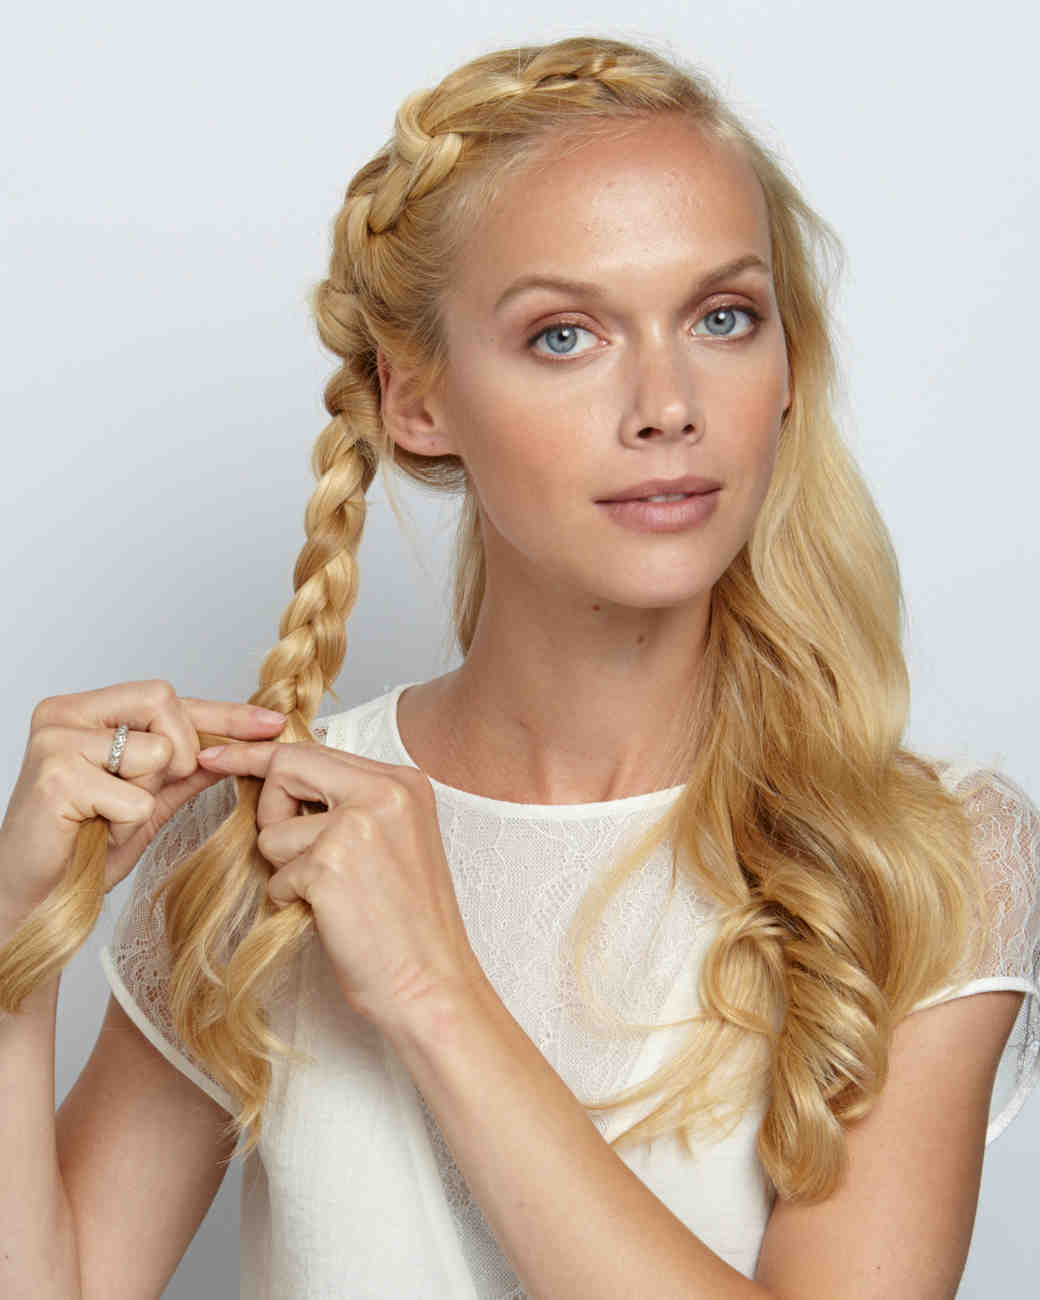 hidden-braid-step-1-4979-d111417-1014.jpg